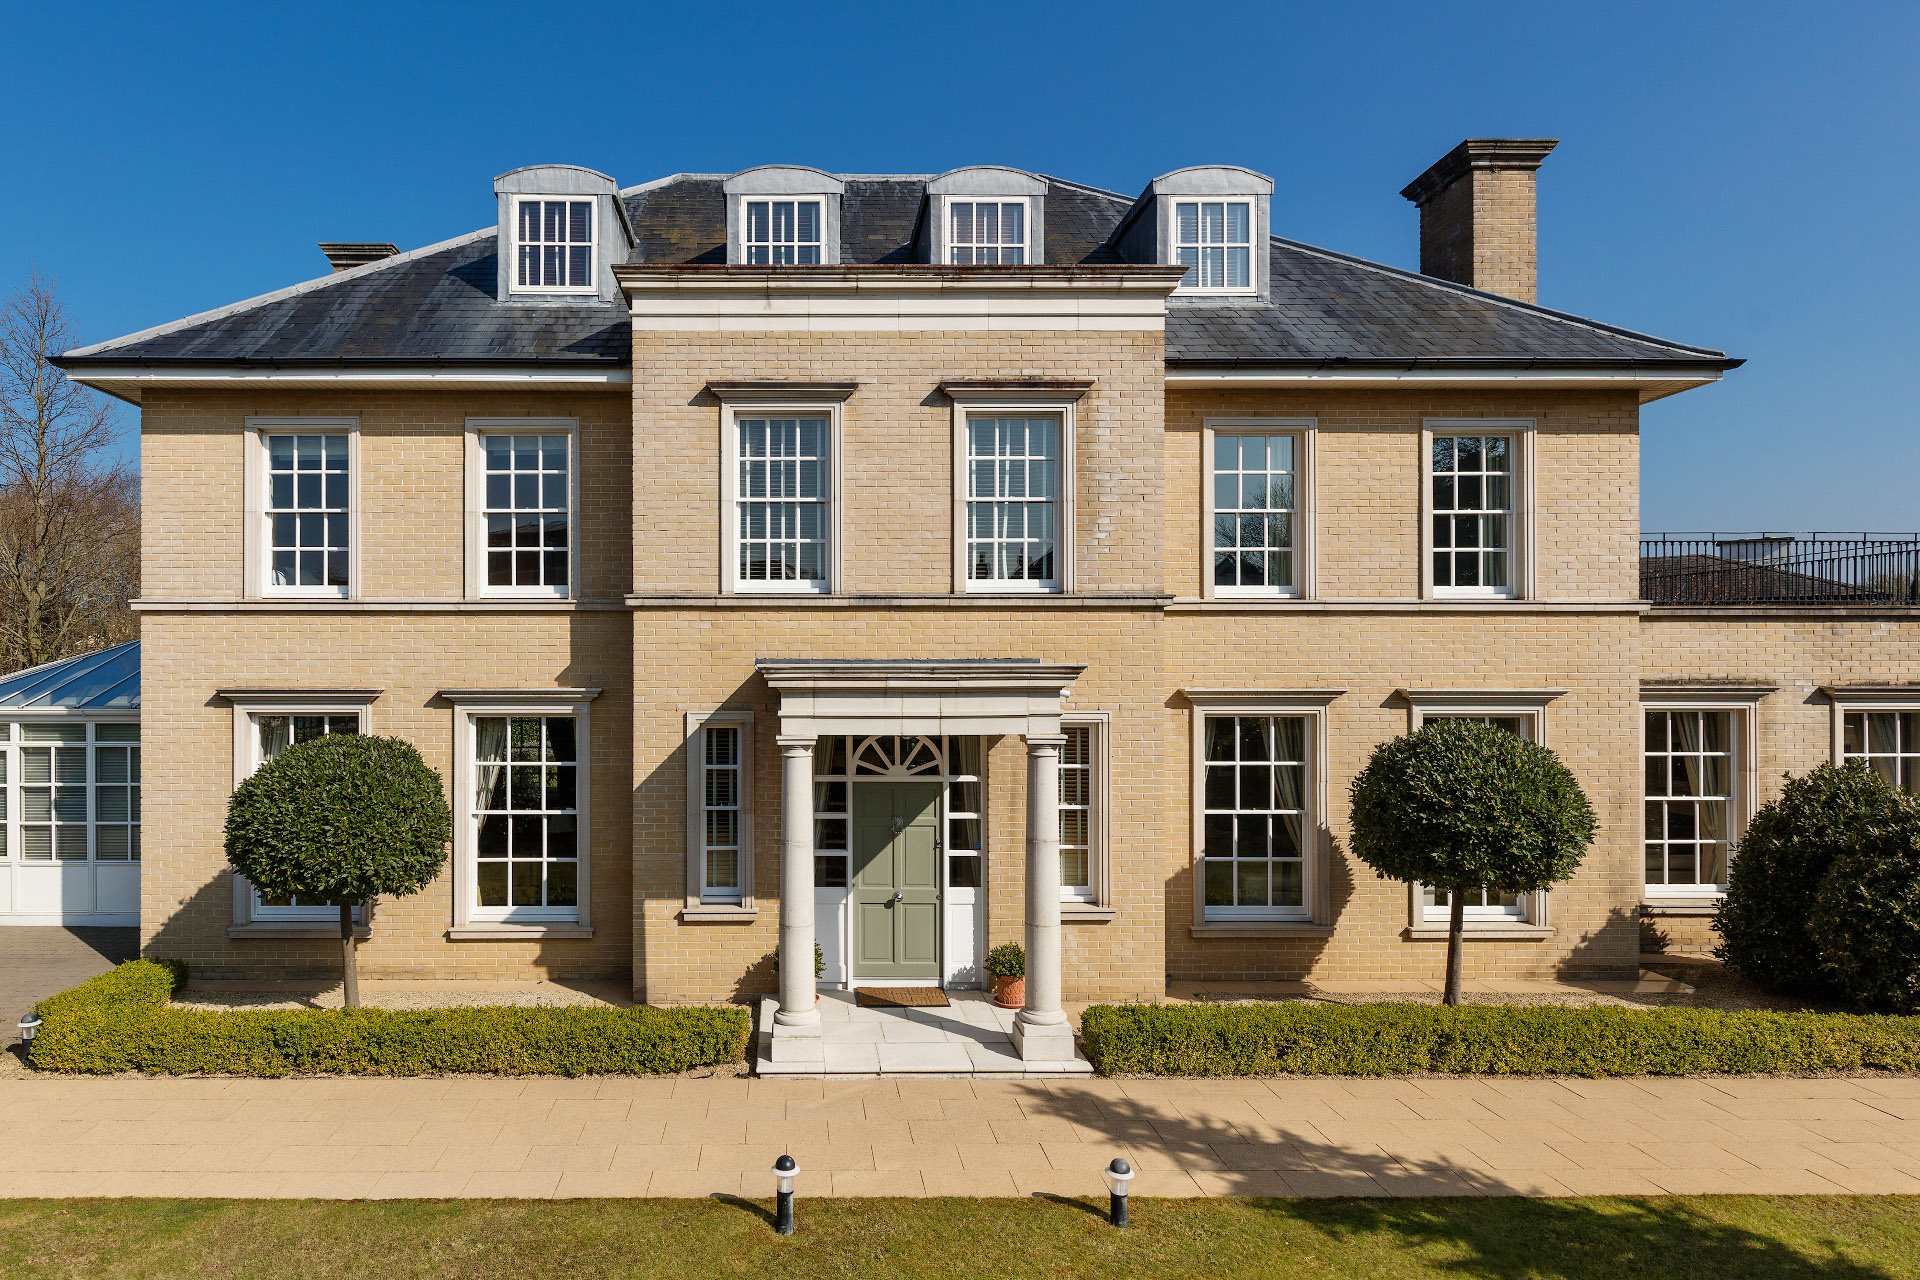 ultra-luxurious family home on more than an acre of landscaped gardens is in Abington, one of Dublin's most distinguished addresses.